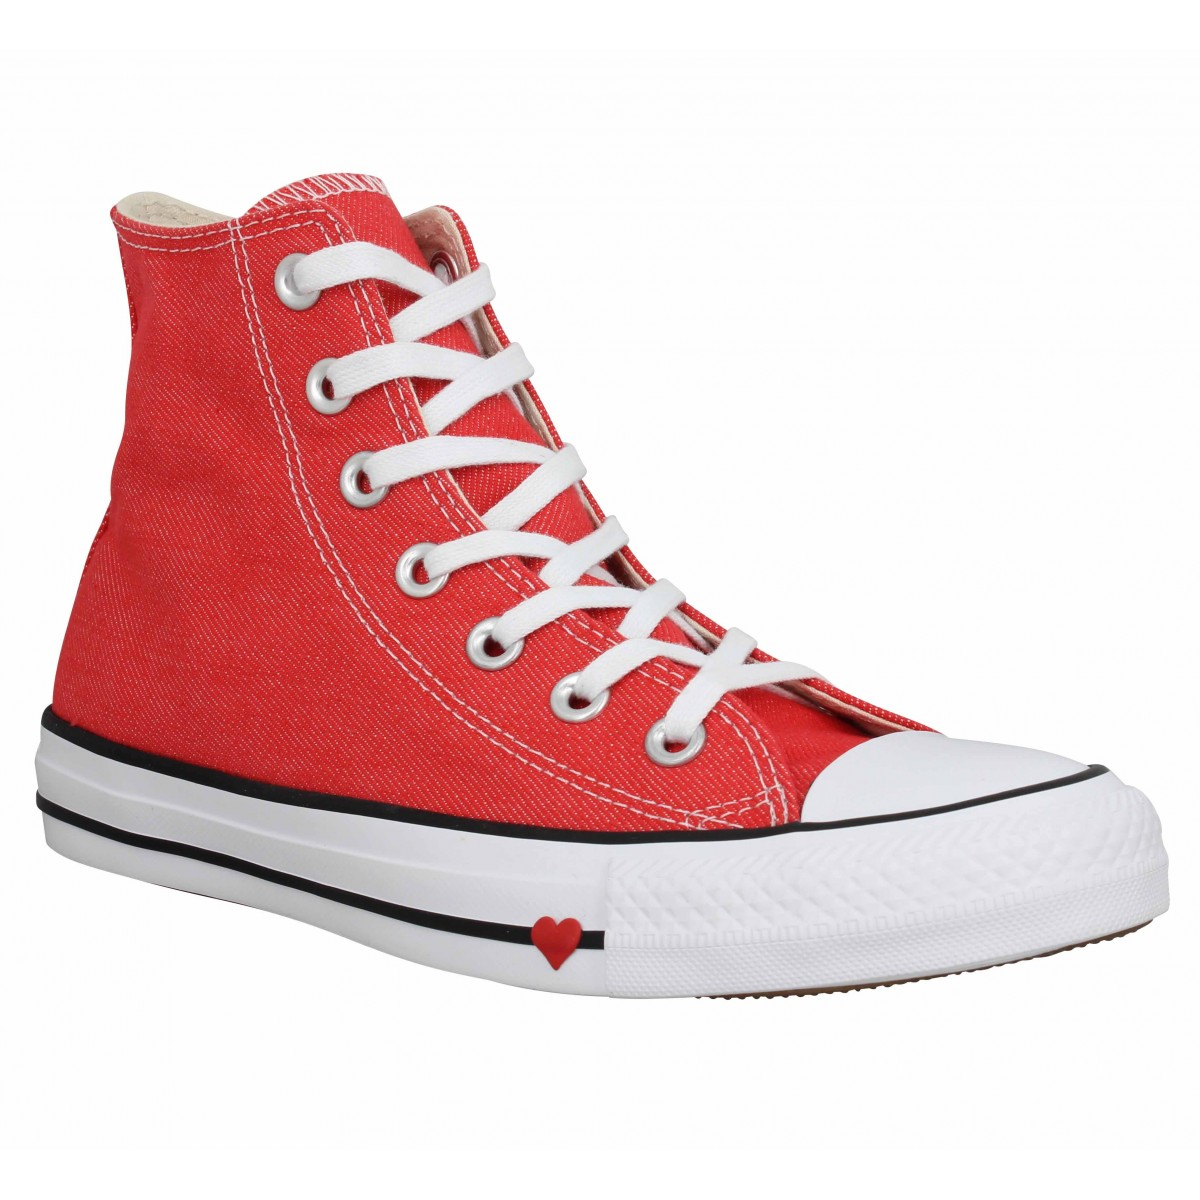 Baskets CONVERSE Chuck Taylor All Star Hi toile Femme Red